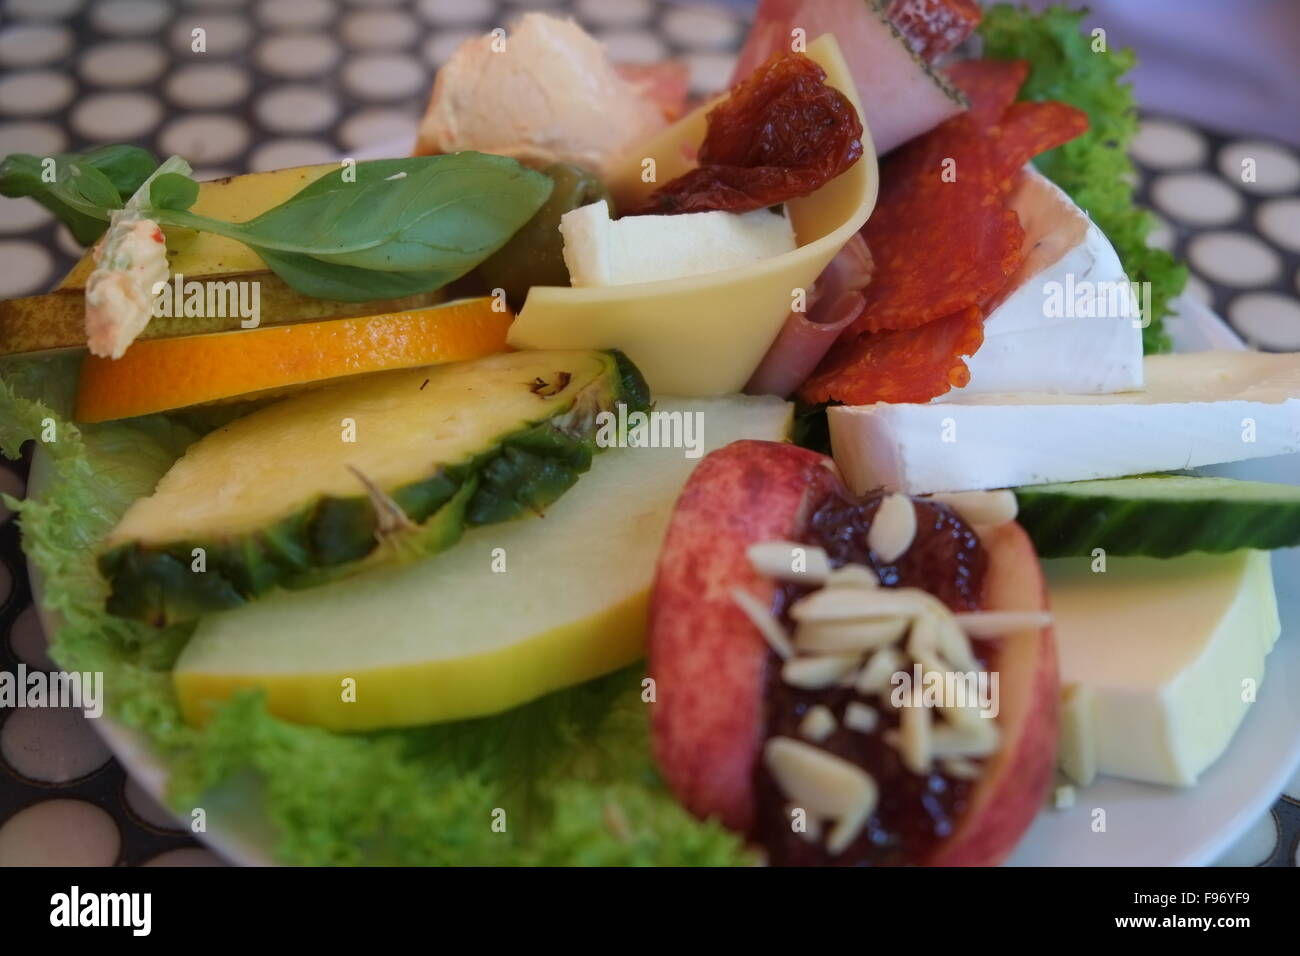 Healthy Living And Nutrition Choices - Stock Image